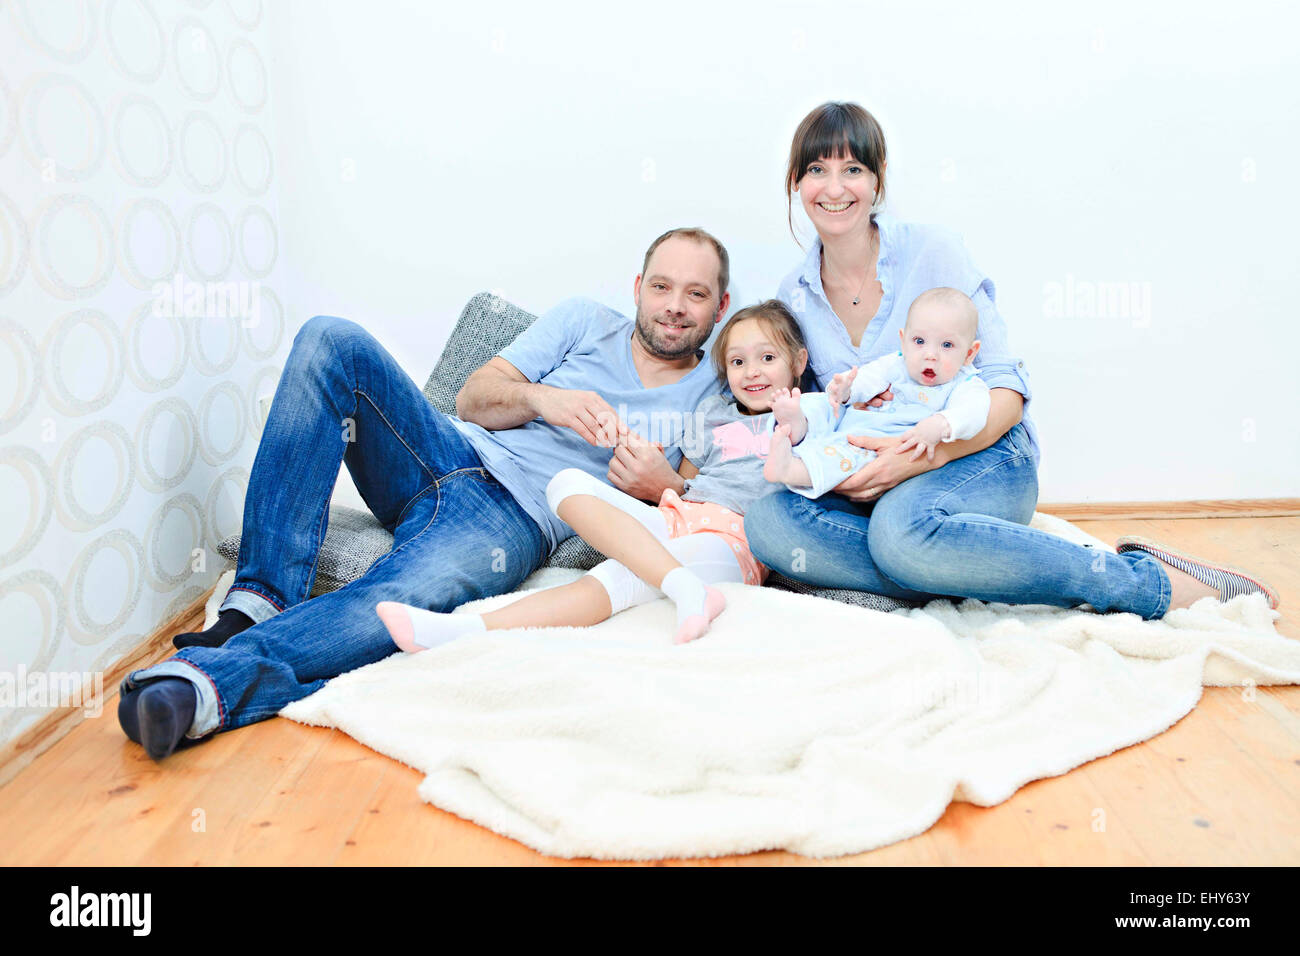 Family at home relaxing on blanket - Stock Image